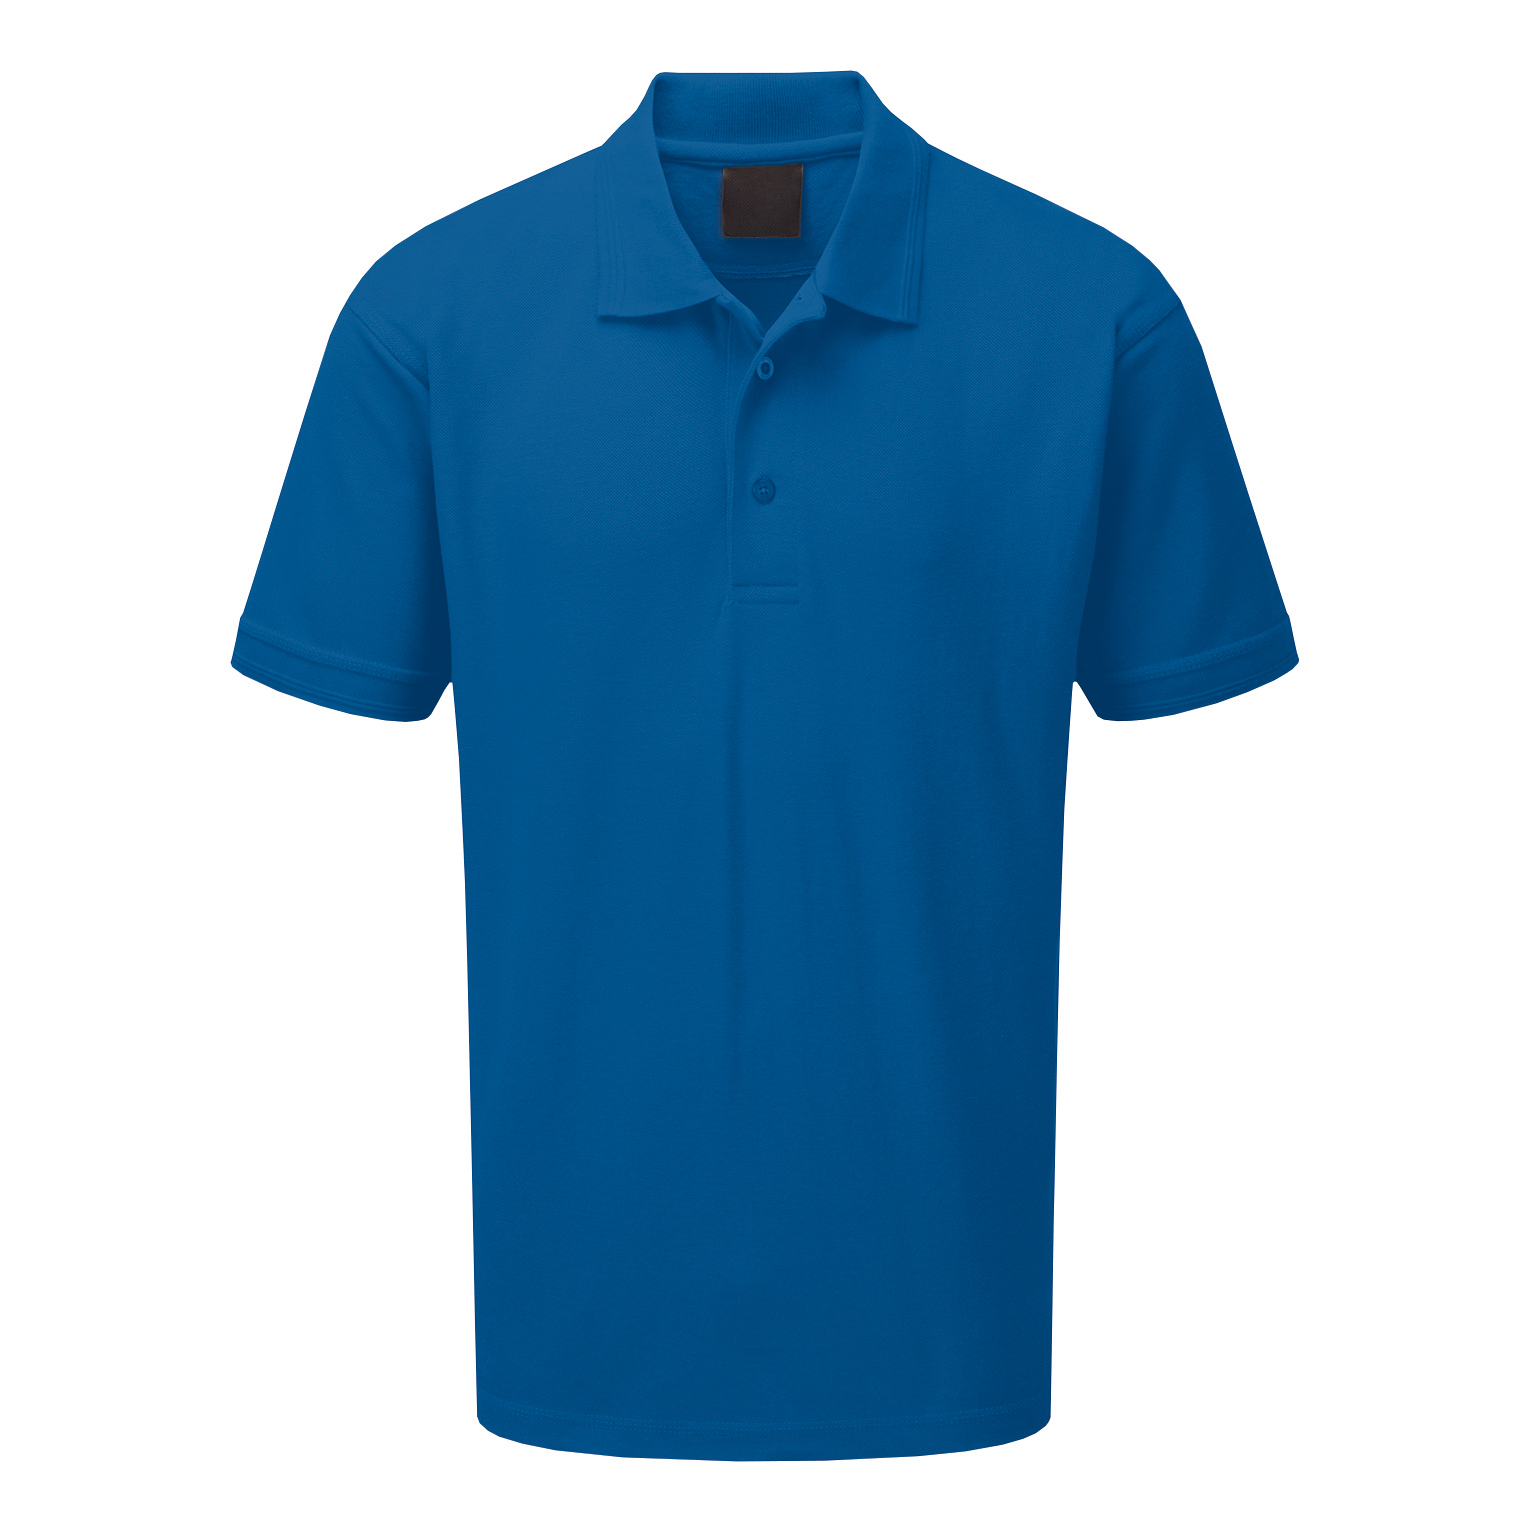 Business Polo Premium Triple Stitched Size Large Royal Blue